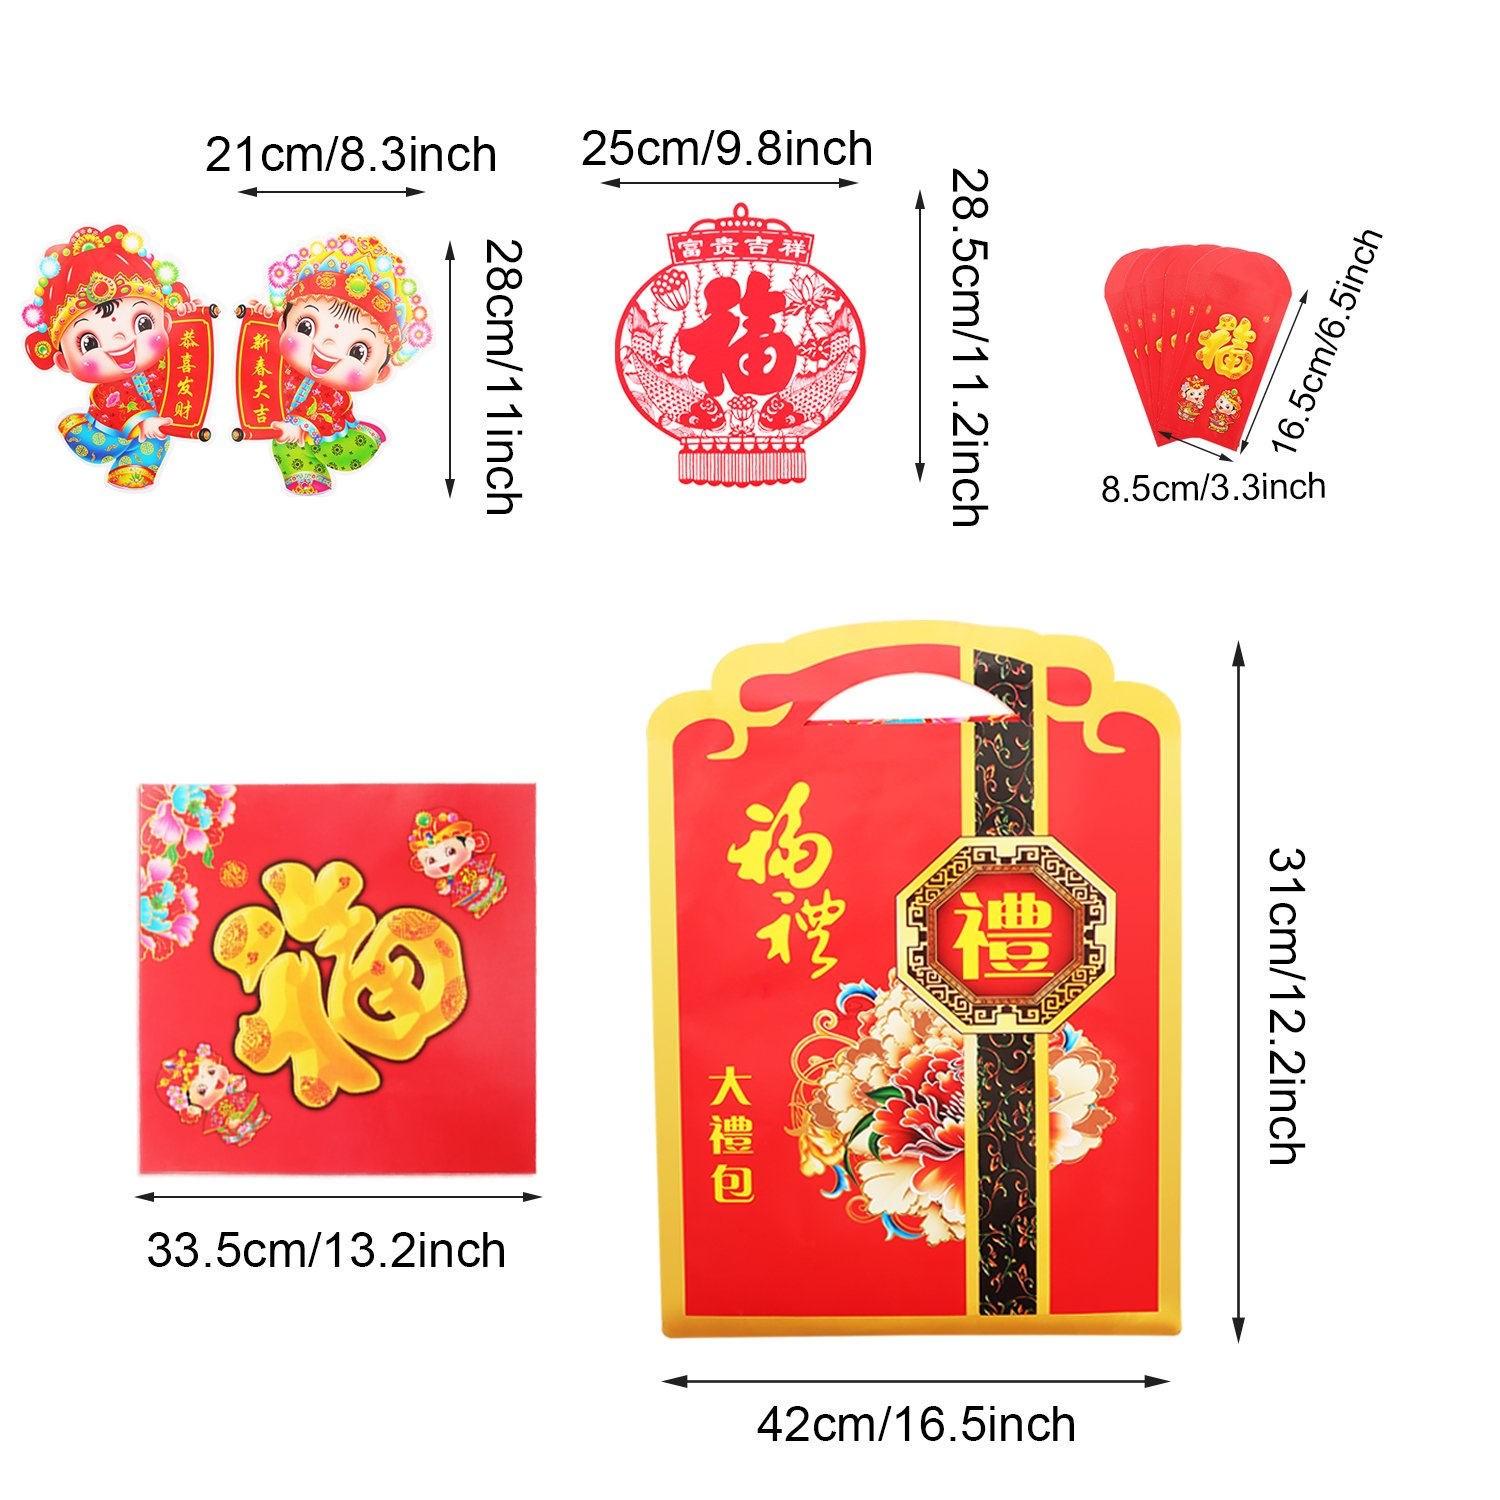 Mtlee Chinese Couplet Decorative Gift Kit for 2019 Chinese New Year Spring Festival, Includes Chun Lian, Fu Characters, Chinese Fu Stickers, Door Stickers, Red Envelopes, FU Bag (Set of 27 Pieces) by Mtlee (Image #7)